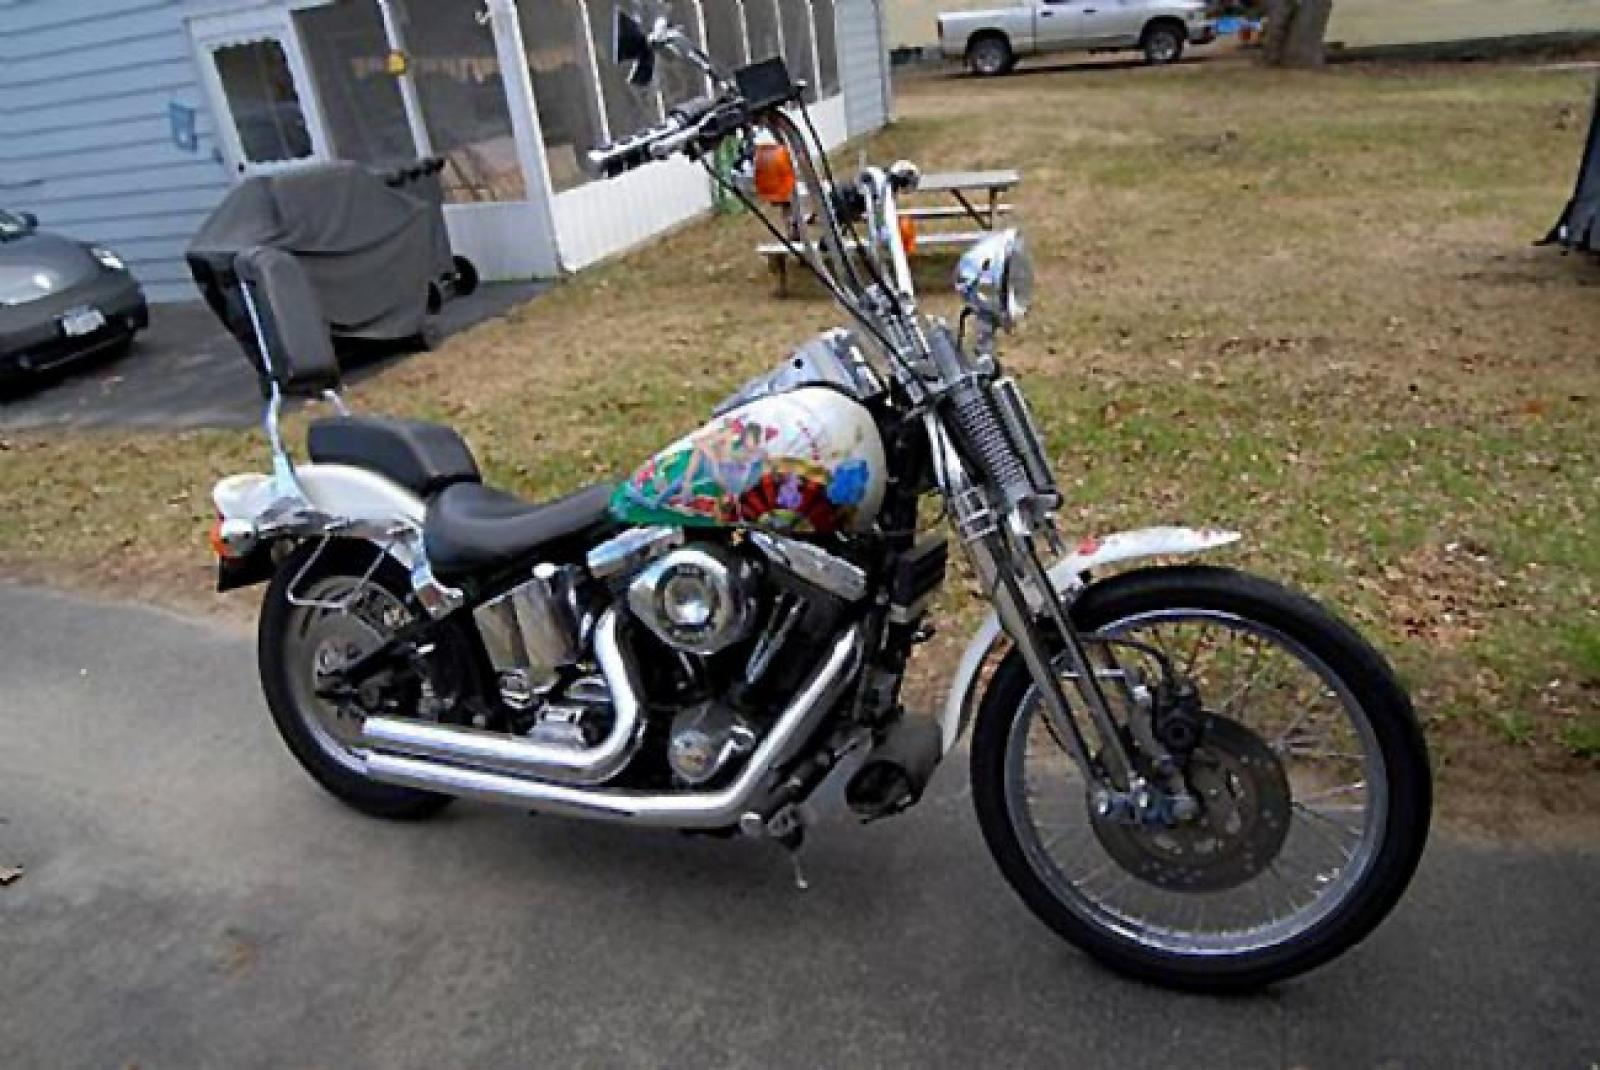 1989 Harley-Davidson 1340 Springer Softail (reduced effect) #1